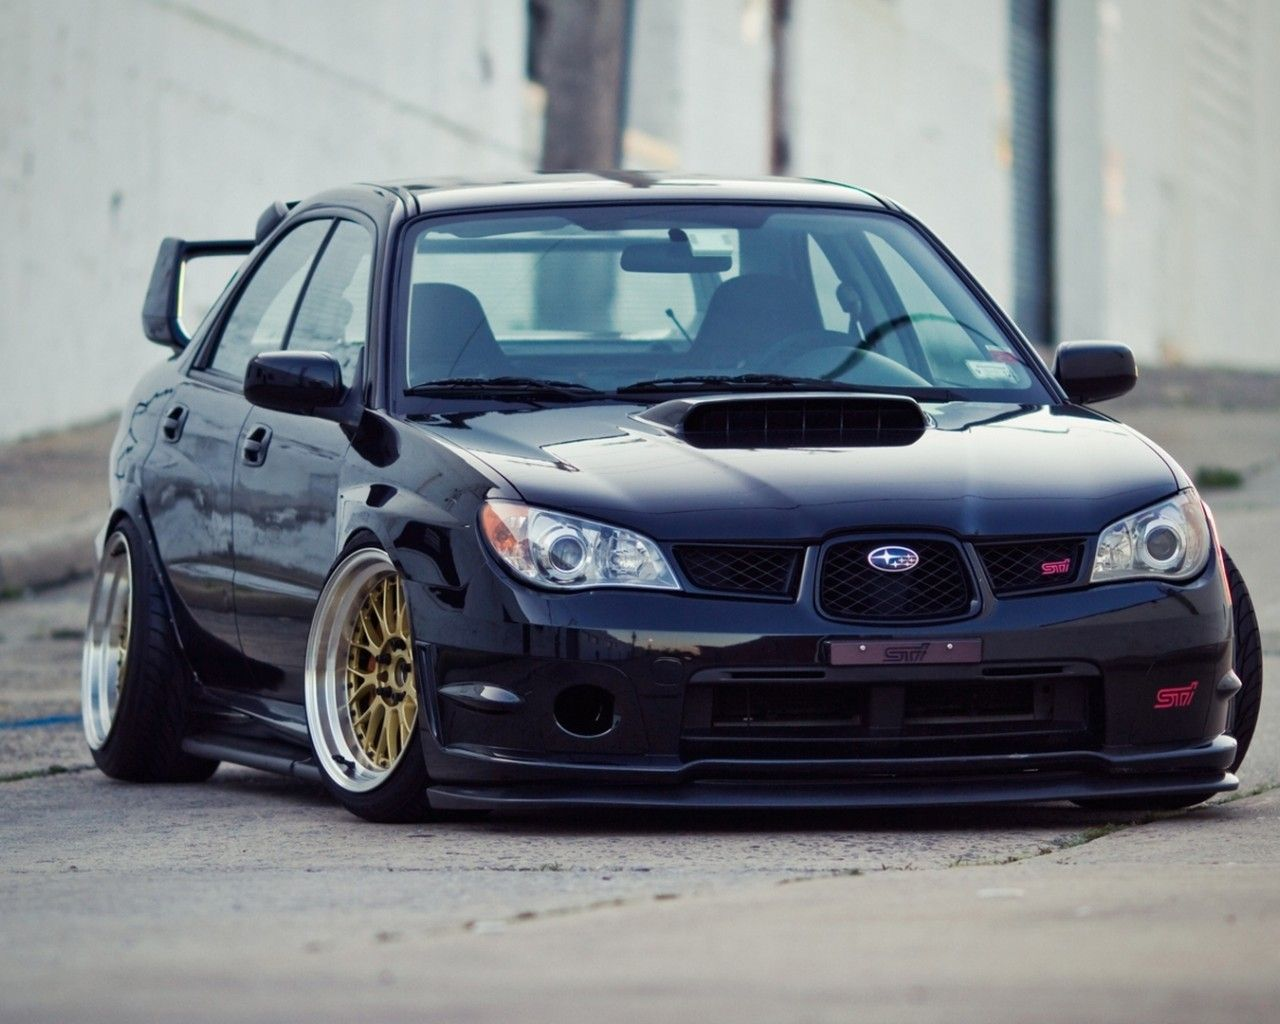 subaru impreza mk2 sedan hawkeye tuning cars. Black Bedroom Furniture Sets. Home Design Ideas